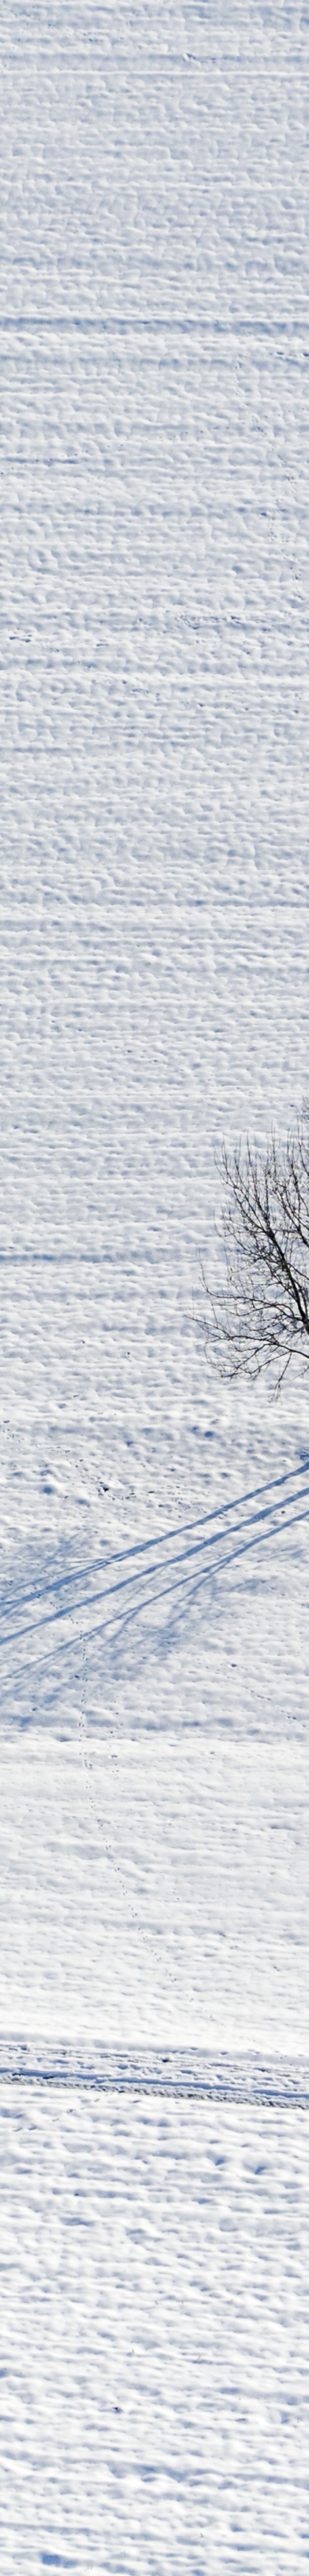 Aerial view of three groups of trees in winter - Klaus Leidorf Aerial Photography